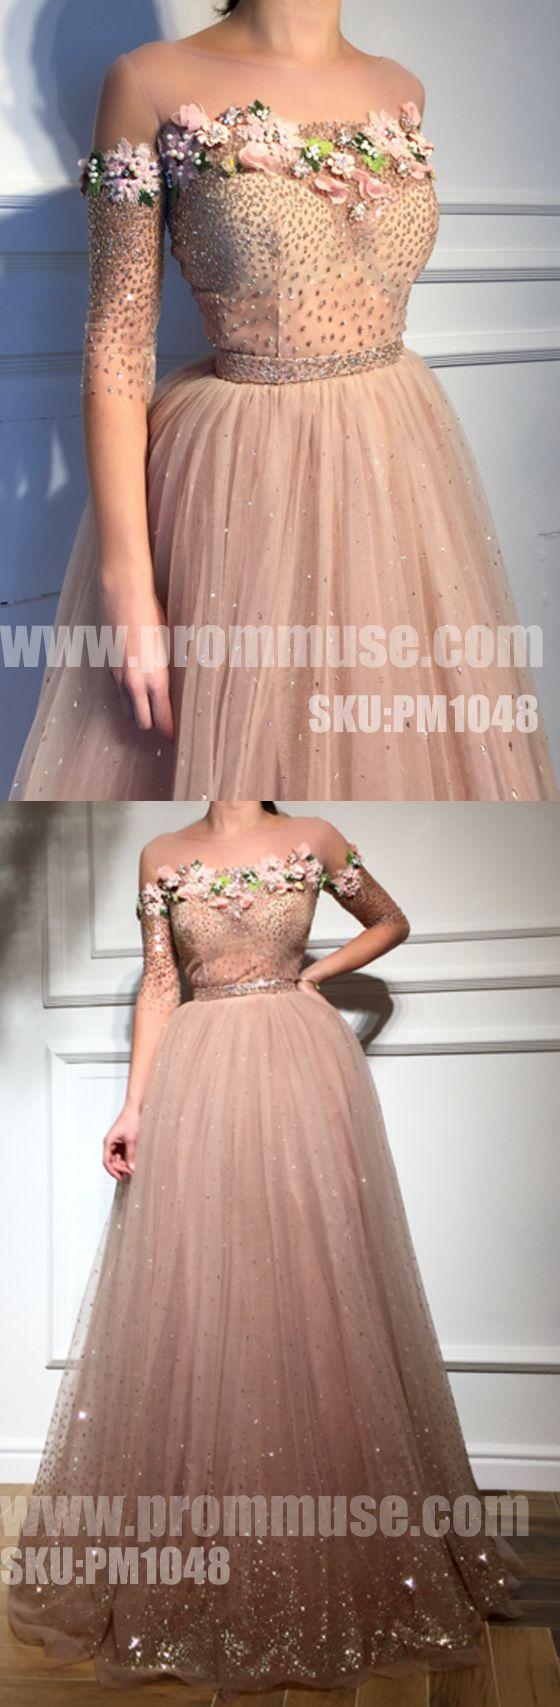 Charming Affordable Half Sleeves Applique Long Evening Prom Dresses, PM1048